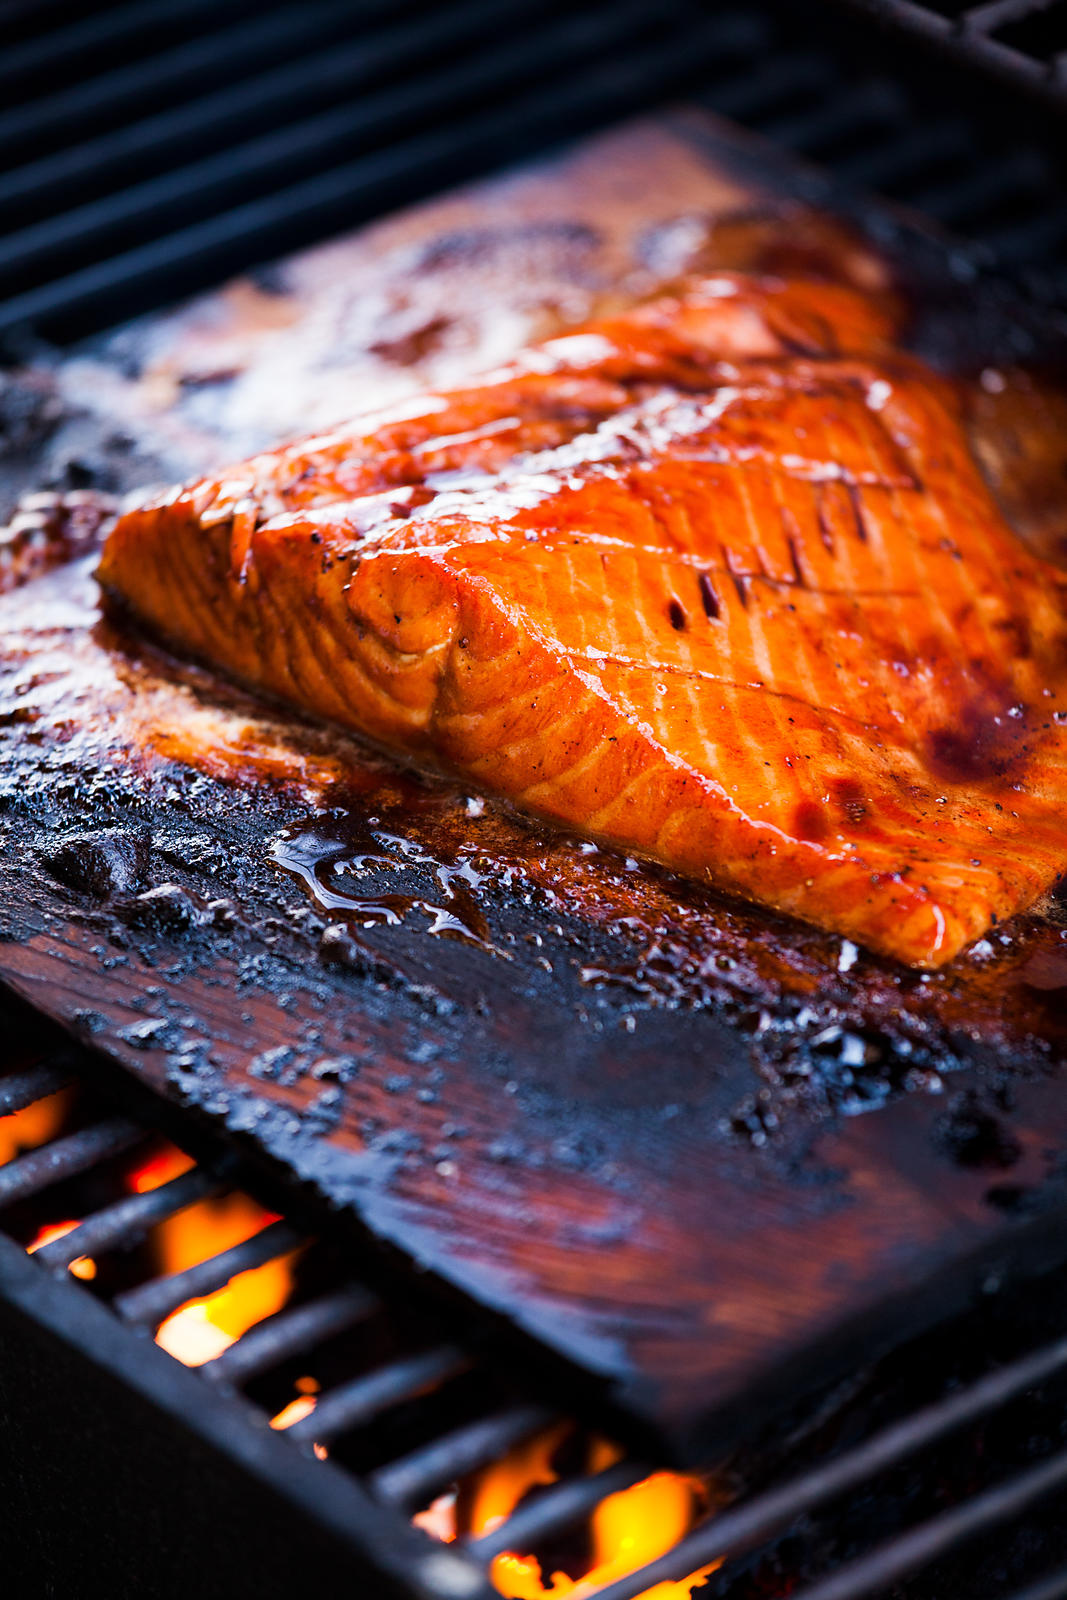 Honey balsamic glazed salmon grilling on cedar wood planks